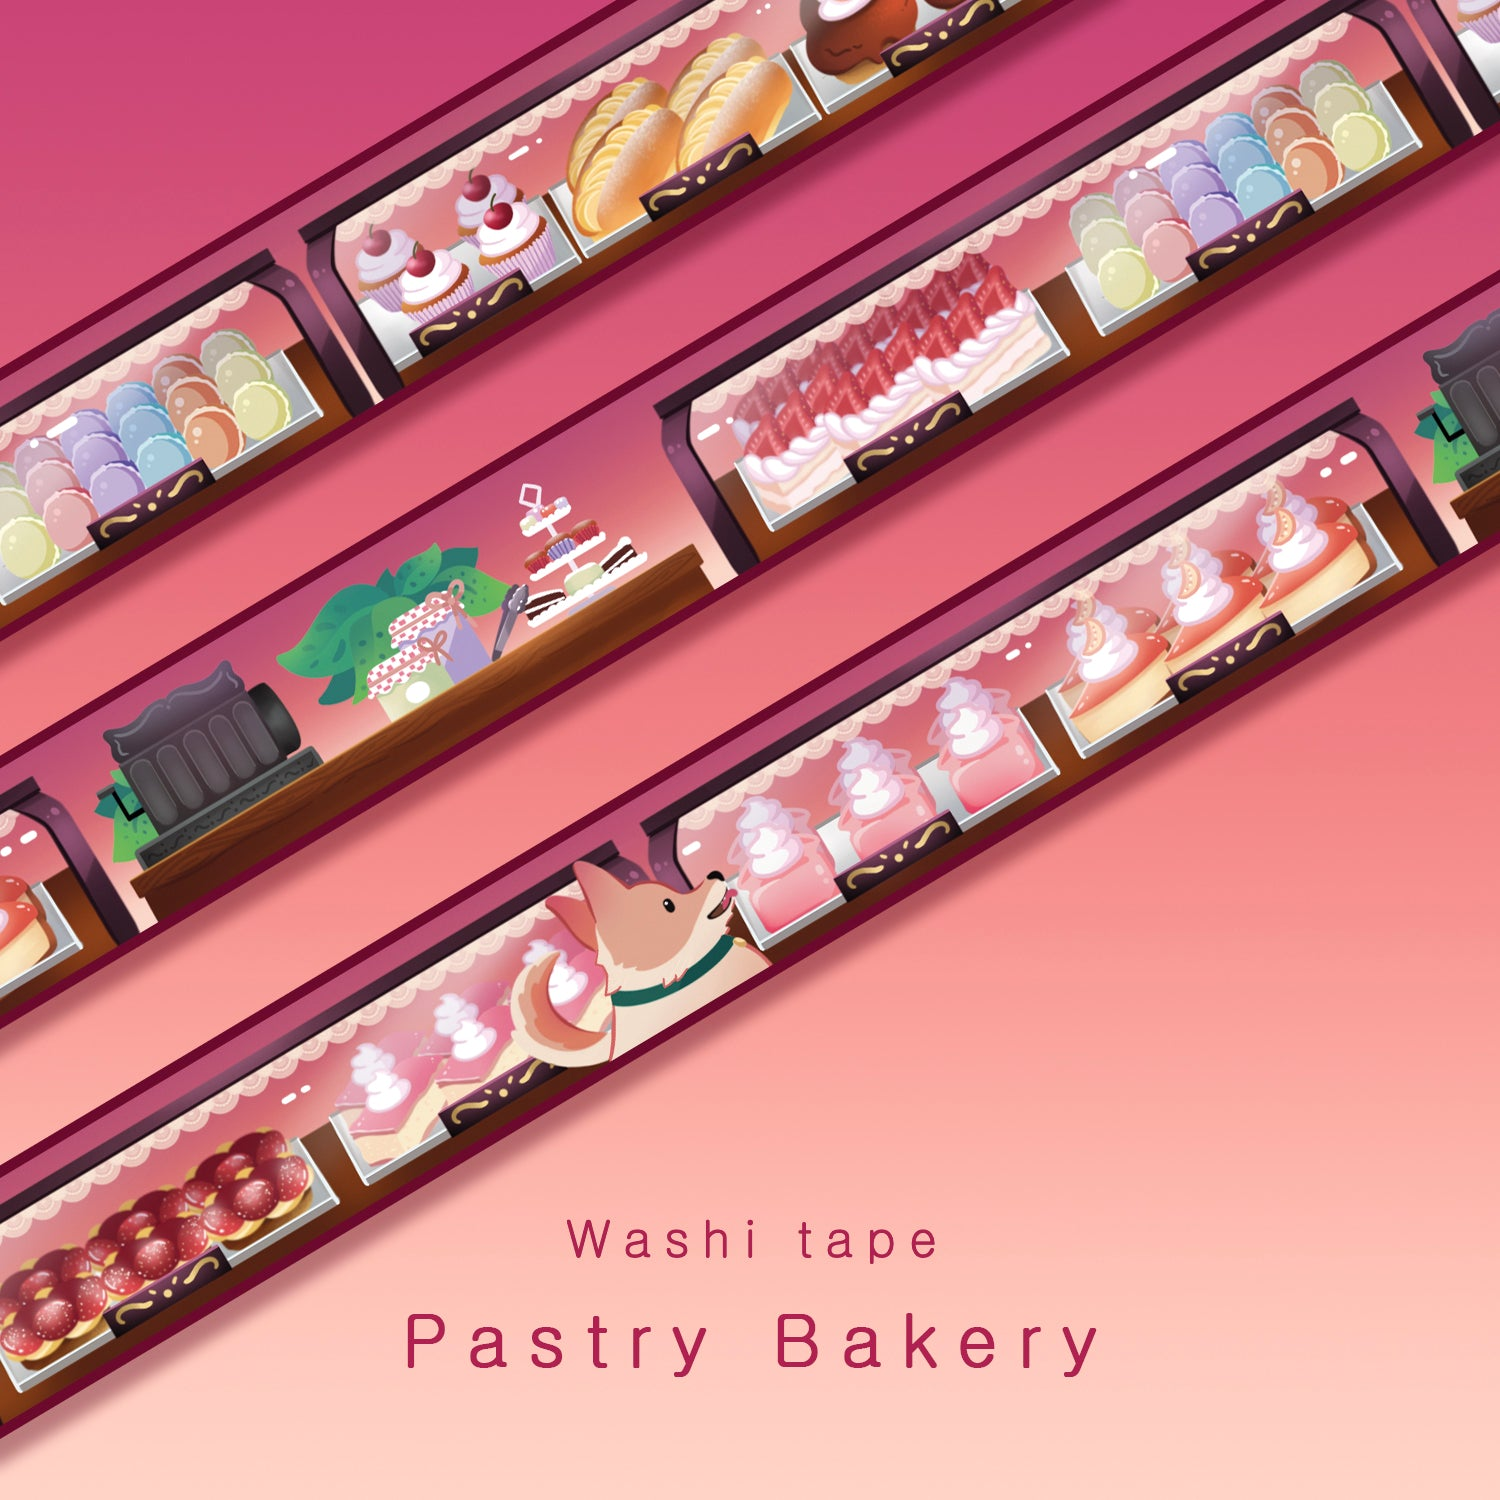 Pastry Bakery - Washi tape